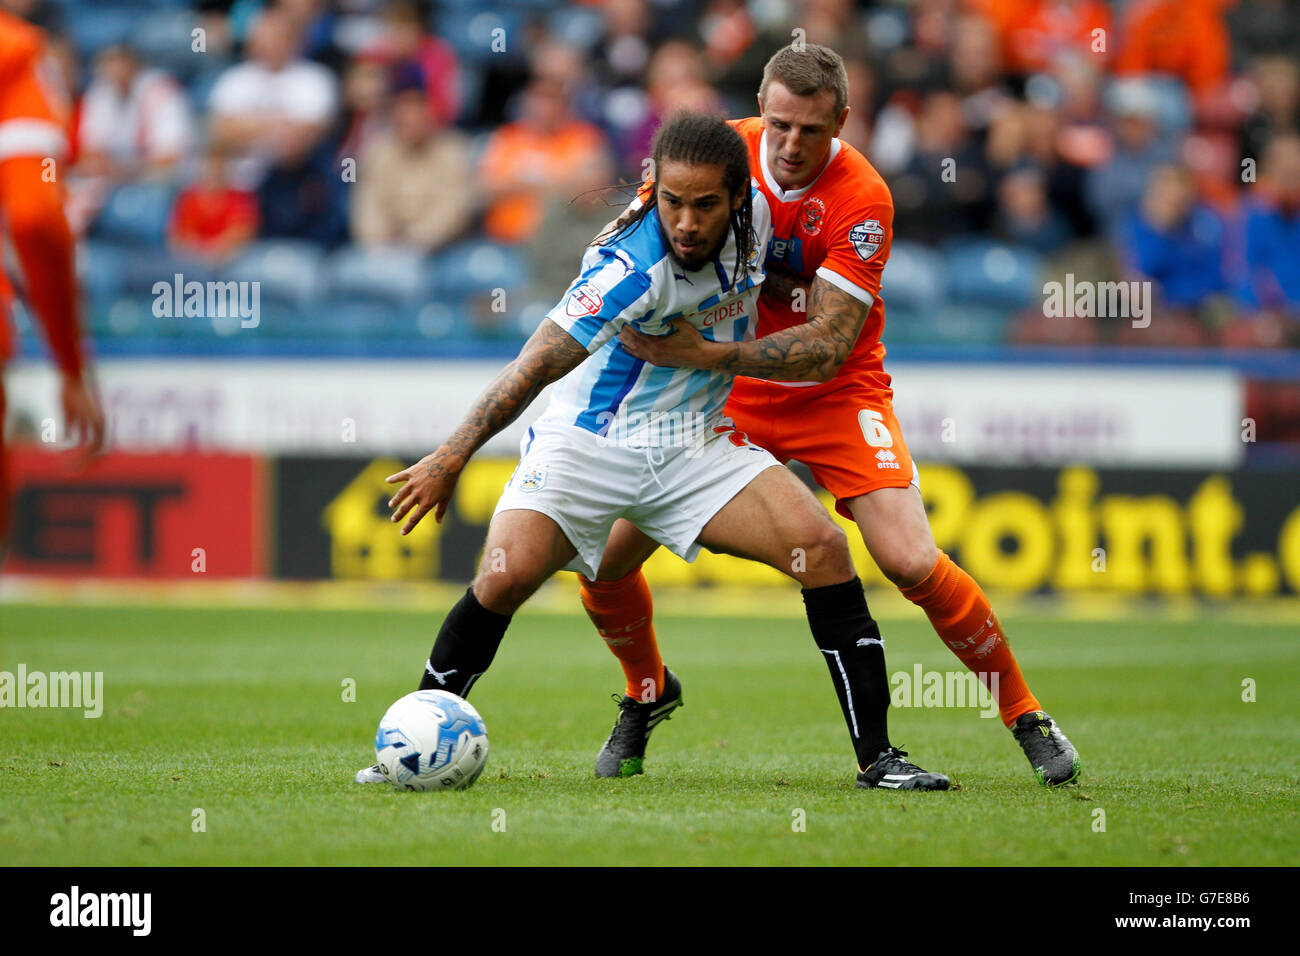 Huddersfield v blackpool betting preview live in game betting rules